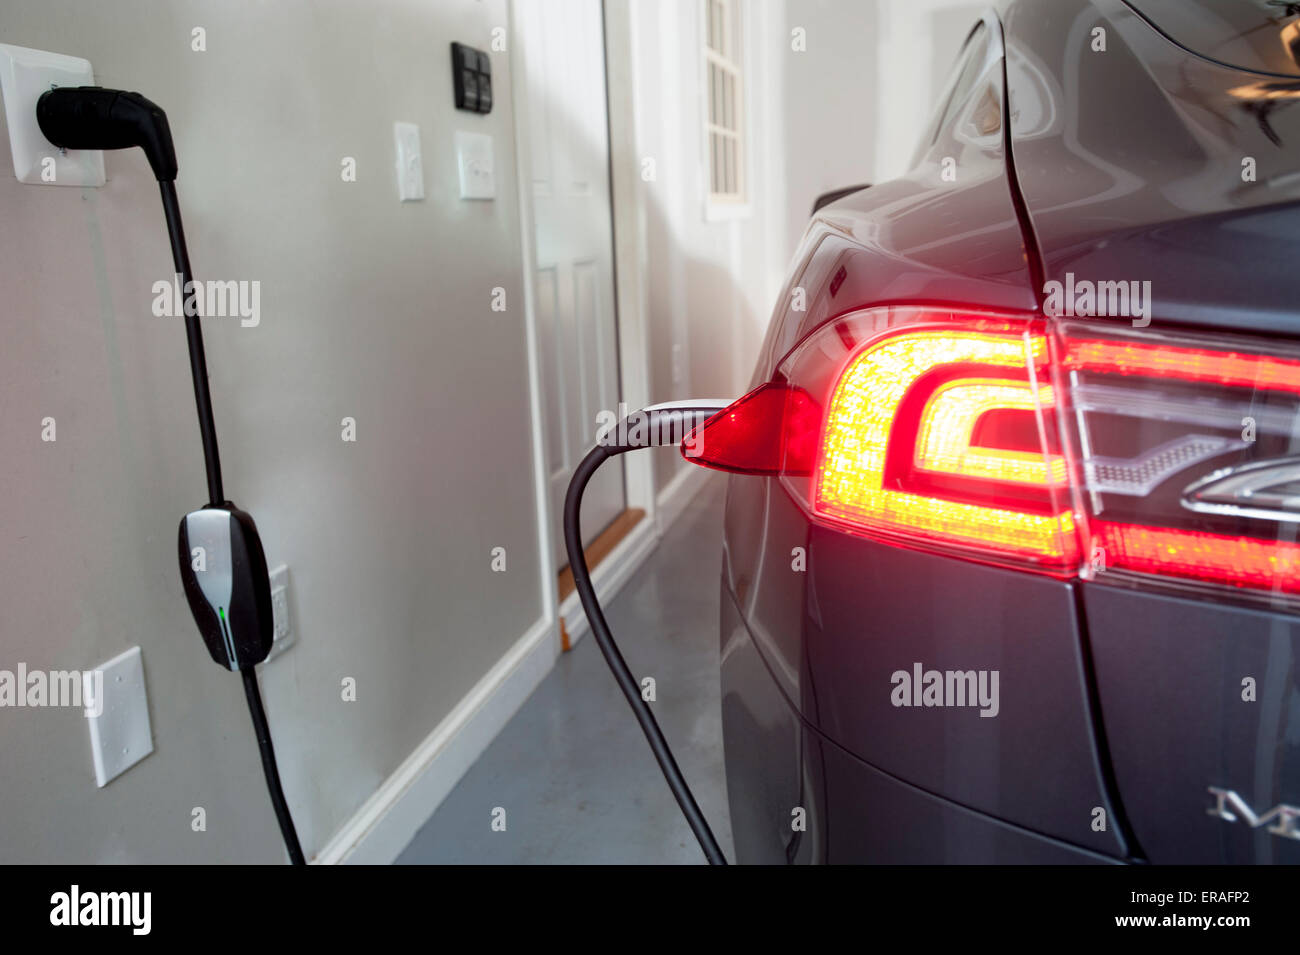 a-model-s-tesla-all-electric-car-automobile-being-charged-in-a-home-ERAFP2.jpg